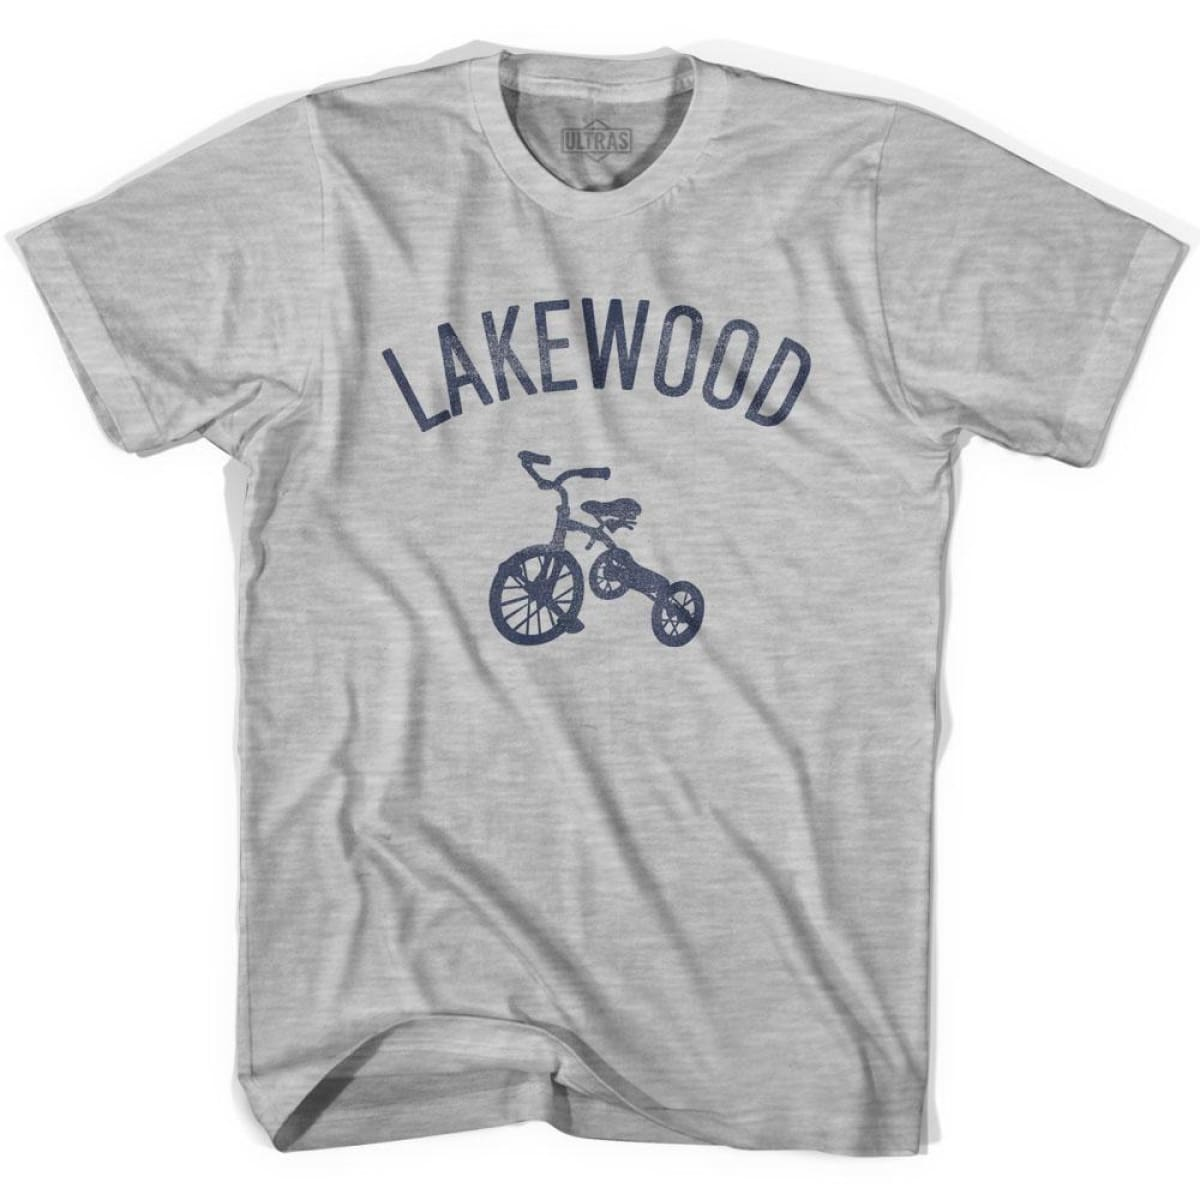 Lakewood City Tricycle Youth Cotton T-shirt - Tricycle City